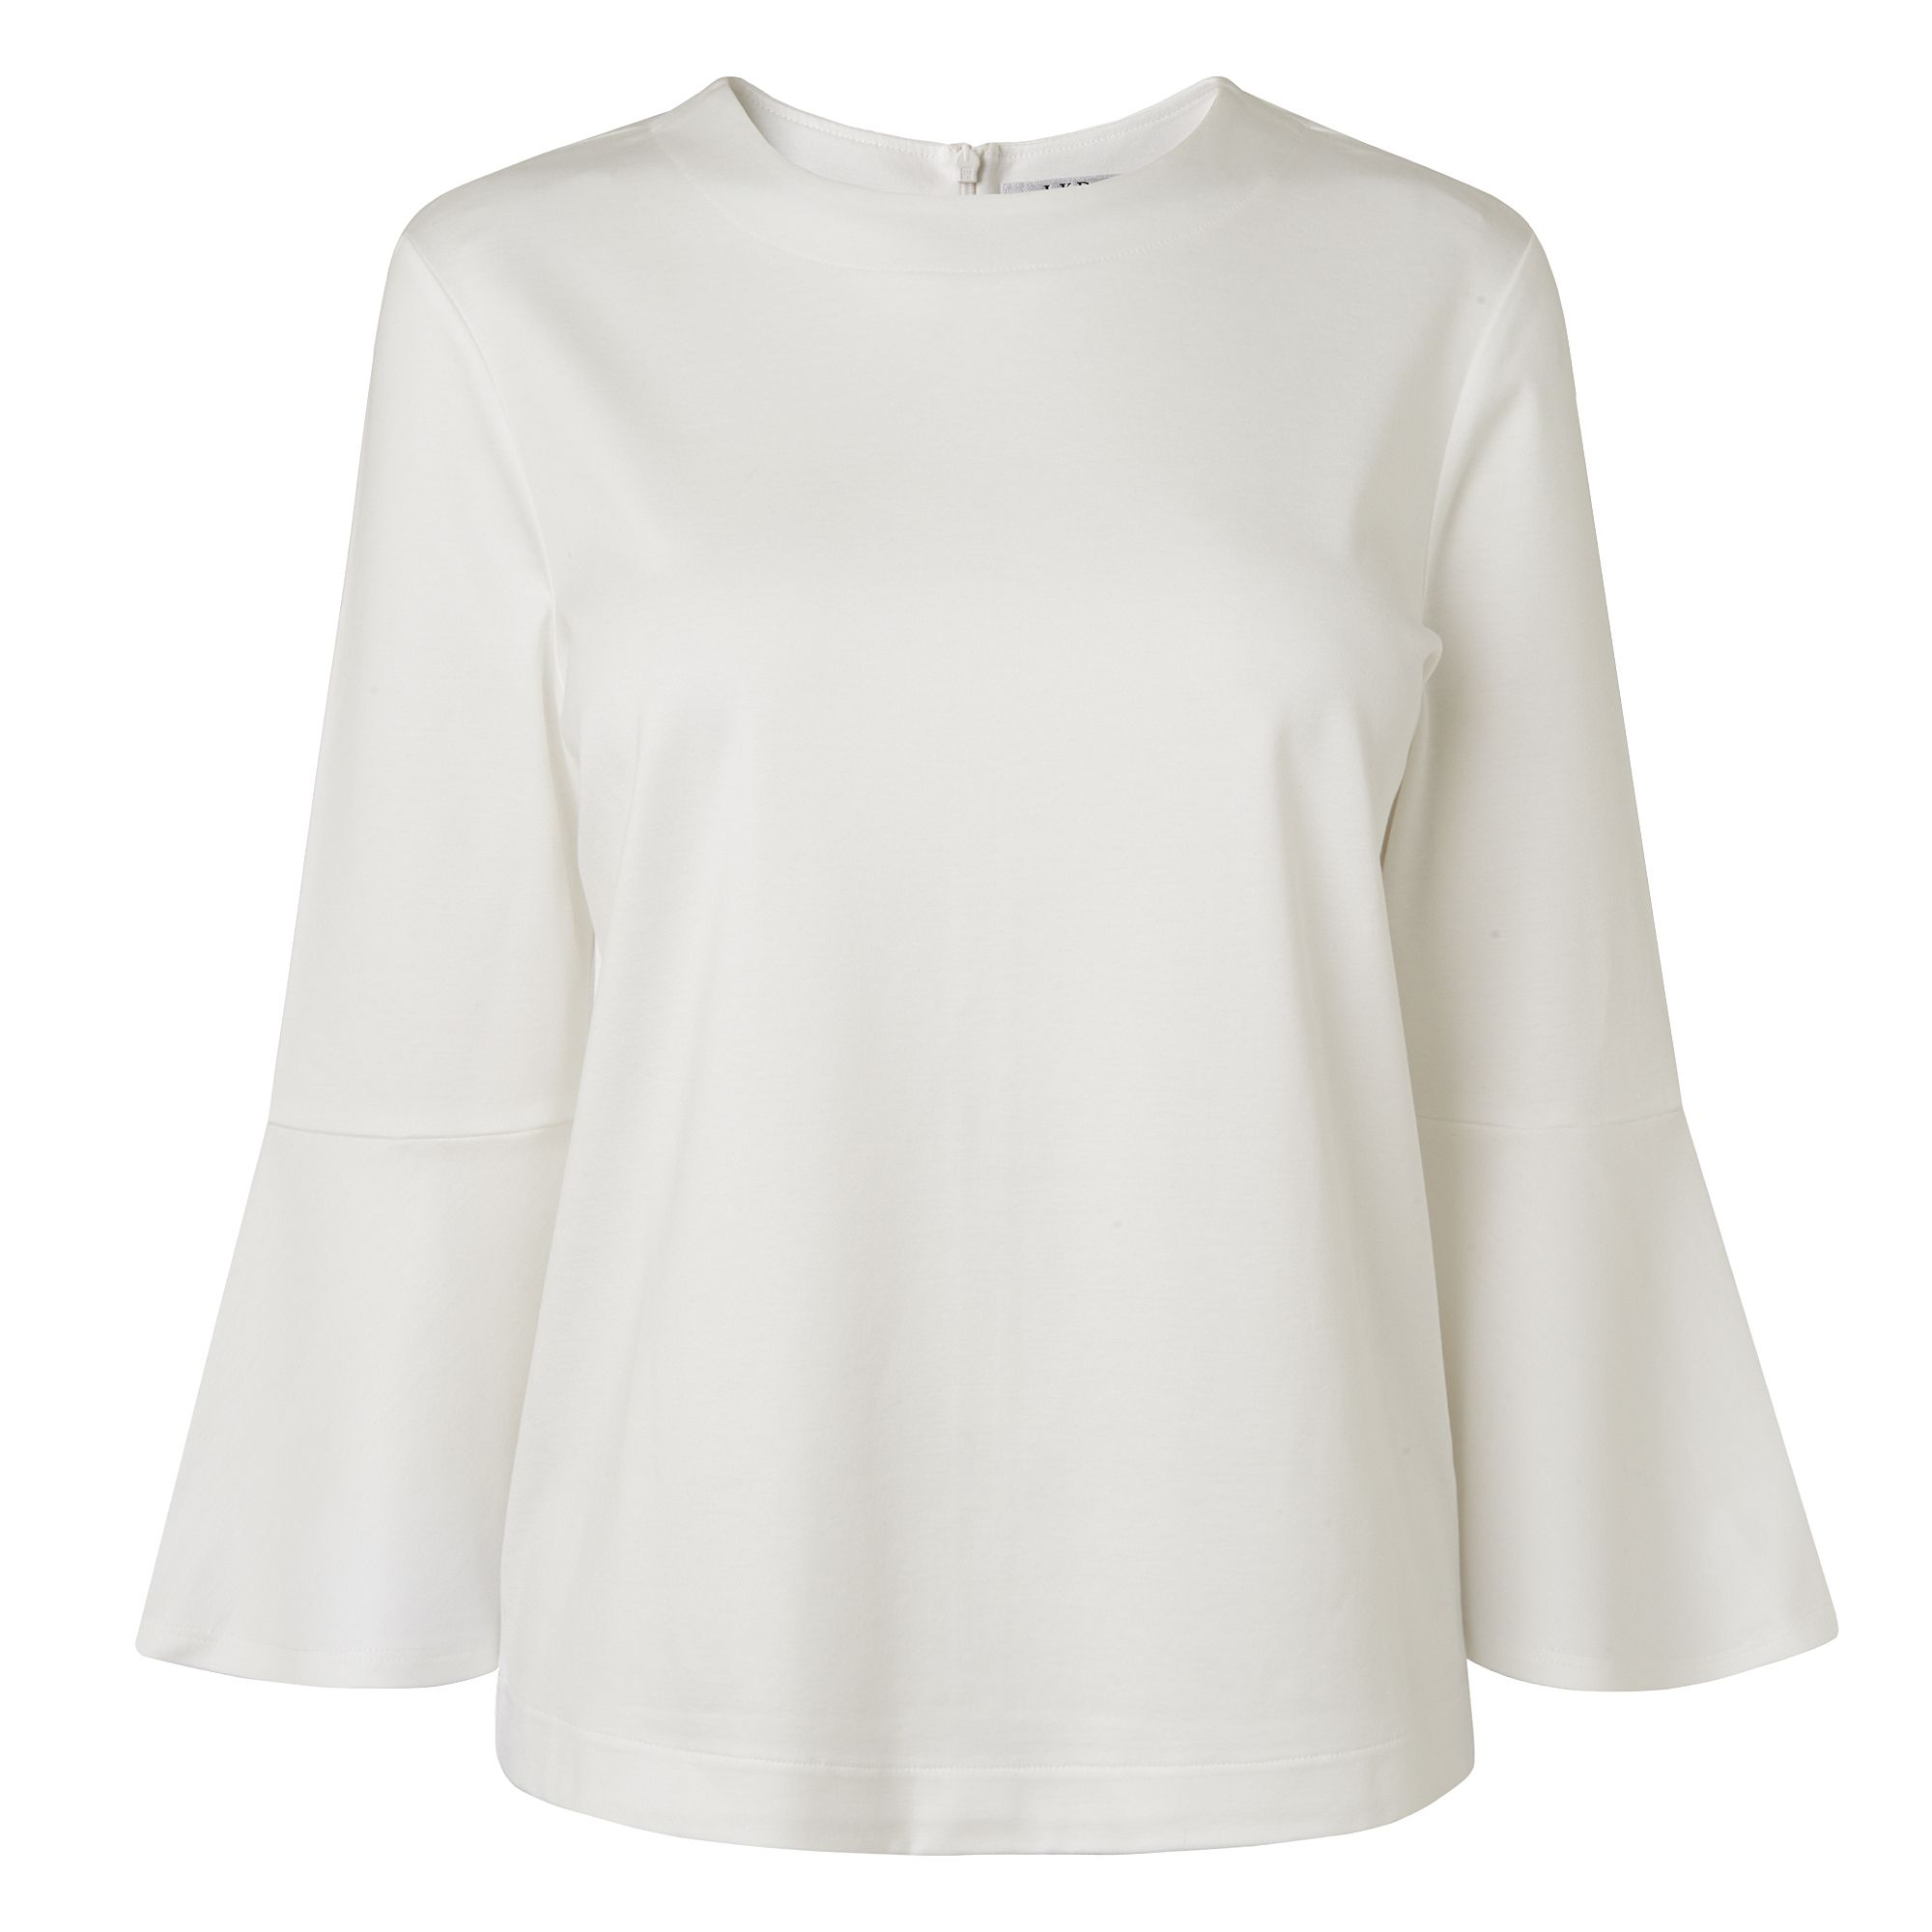 L.K. Bennett Leon Fluted Sleeve Top, White